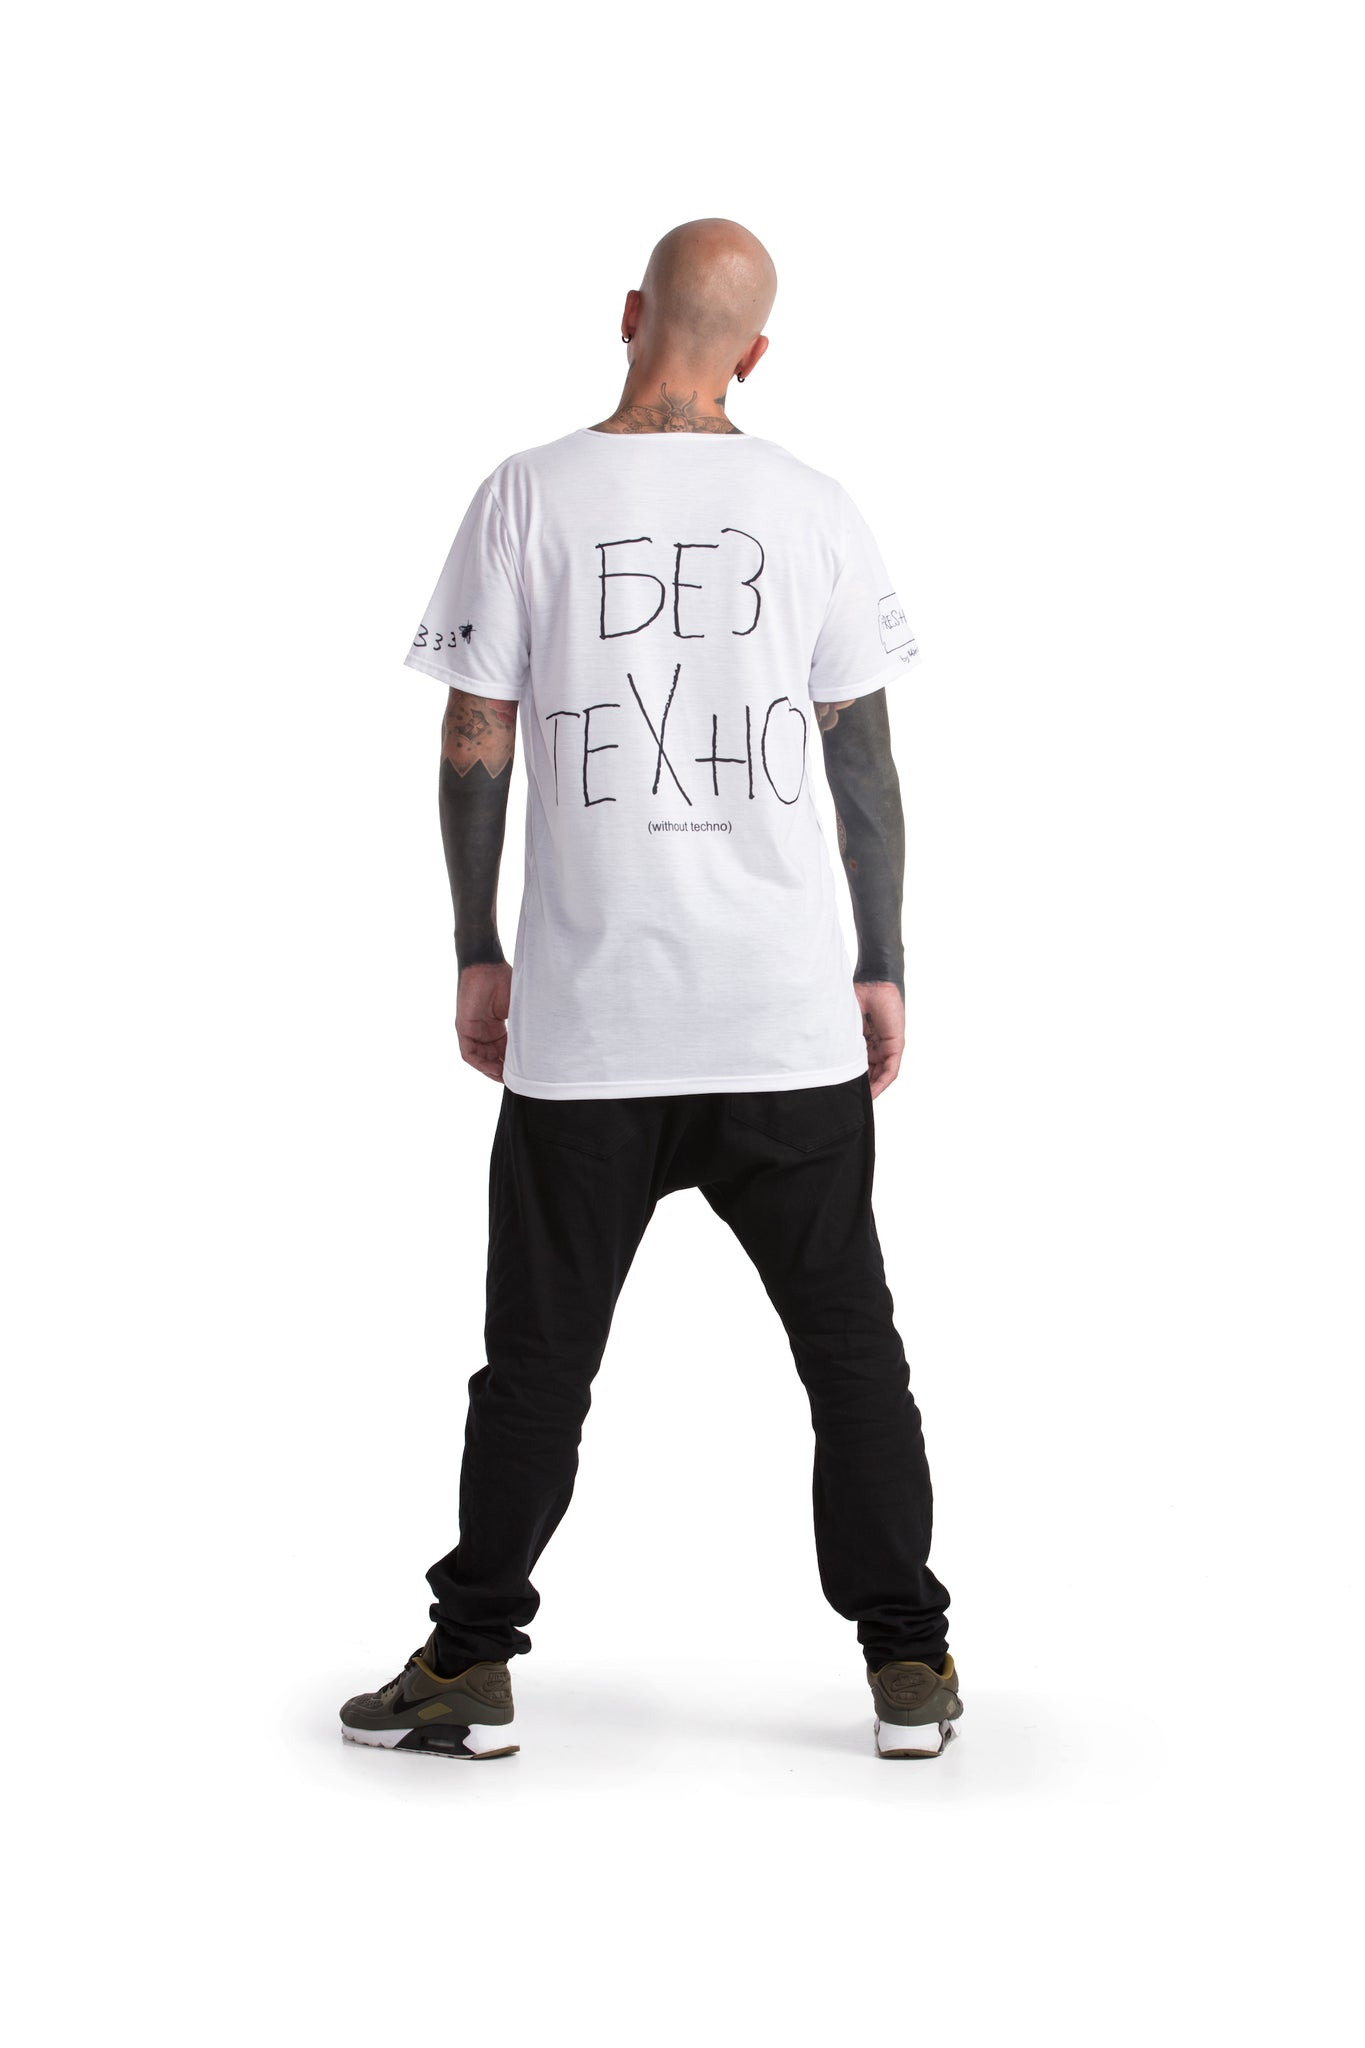 Вечеринка Дерьмо / Без Техно. - oversized T-shirt [white]